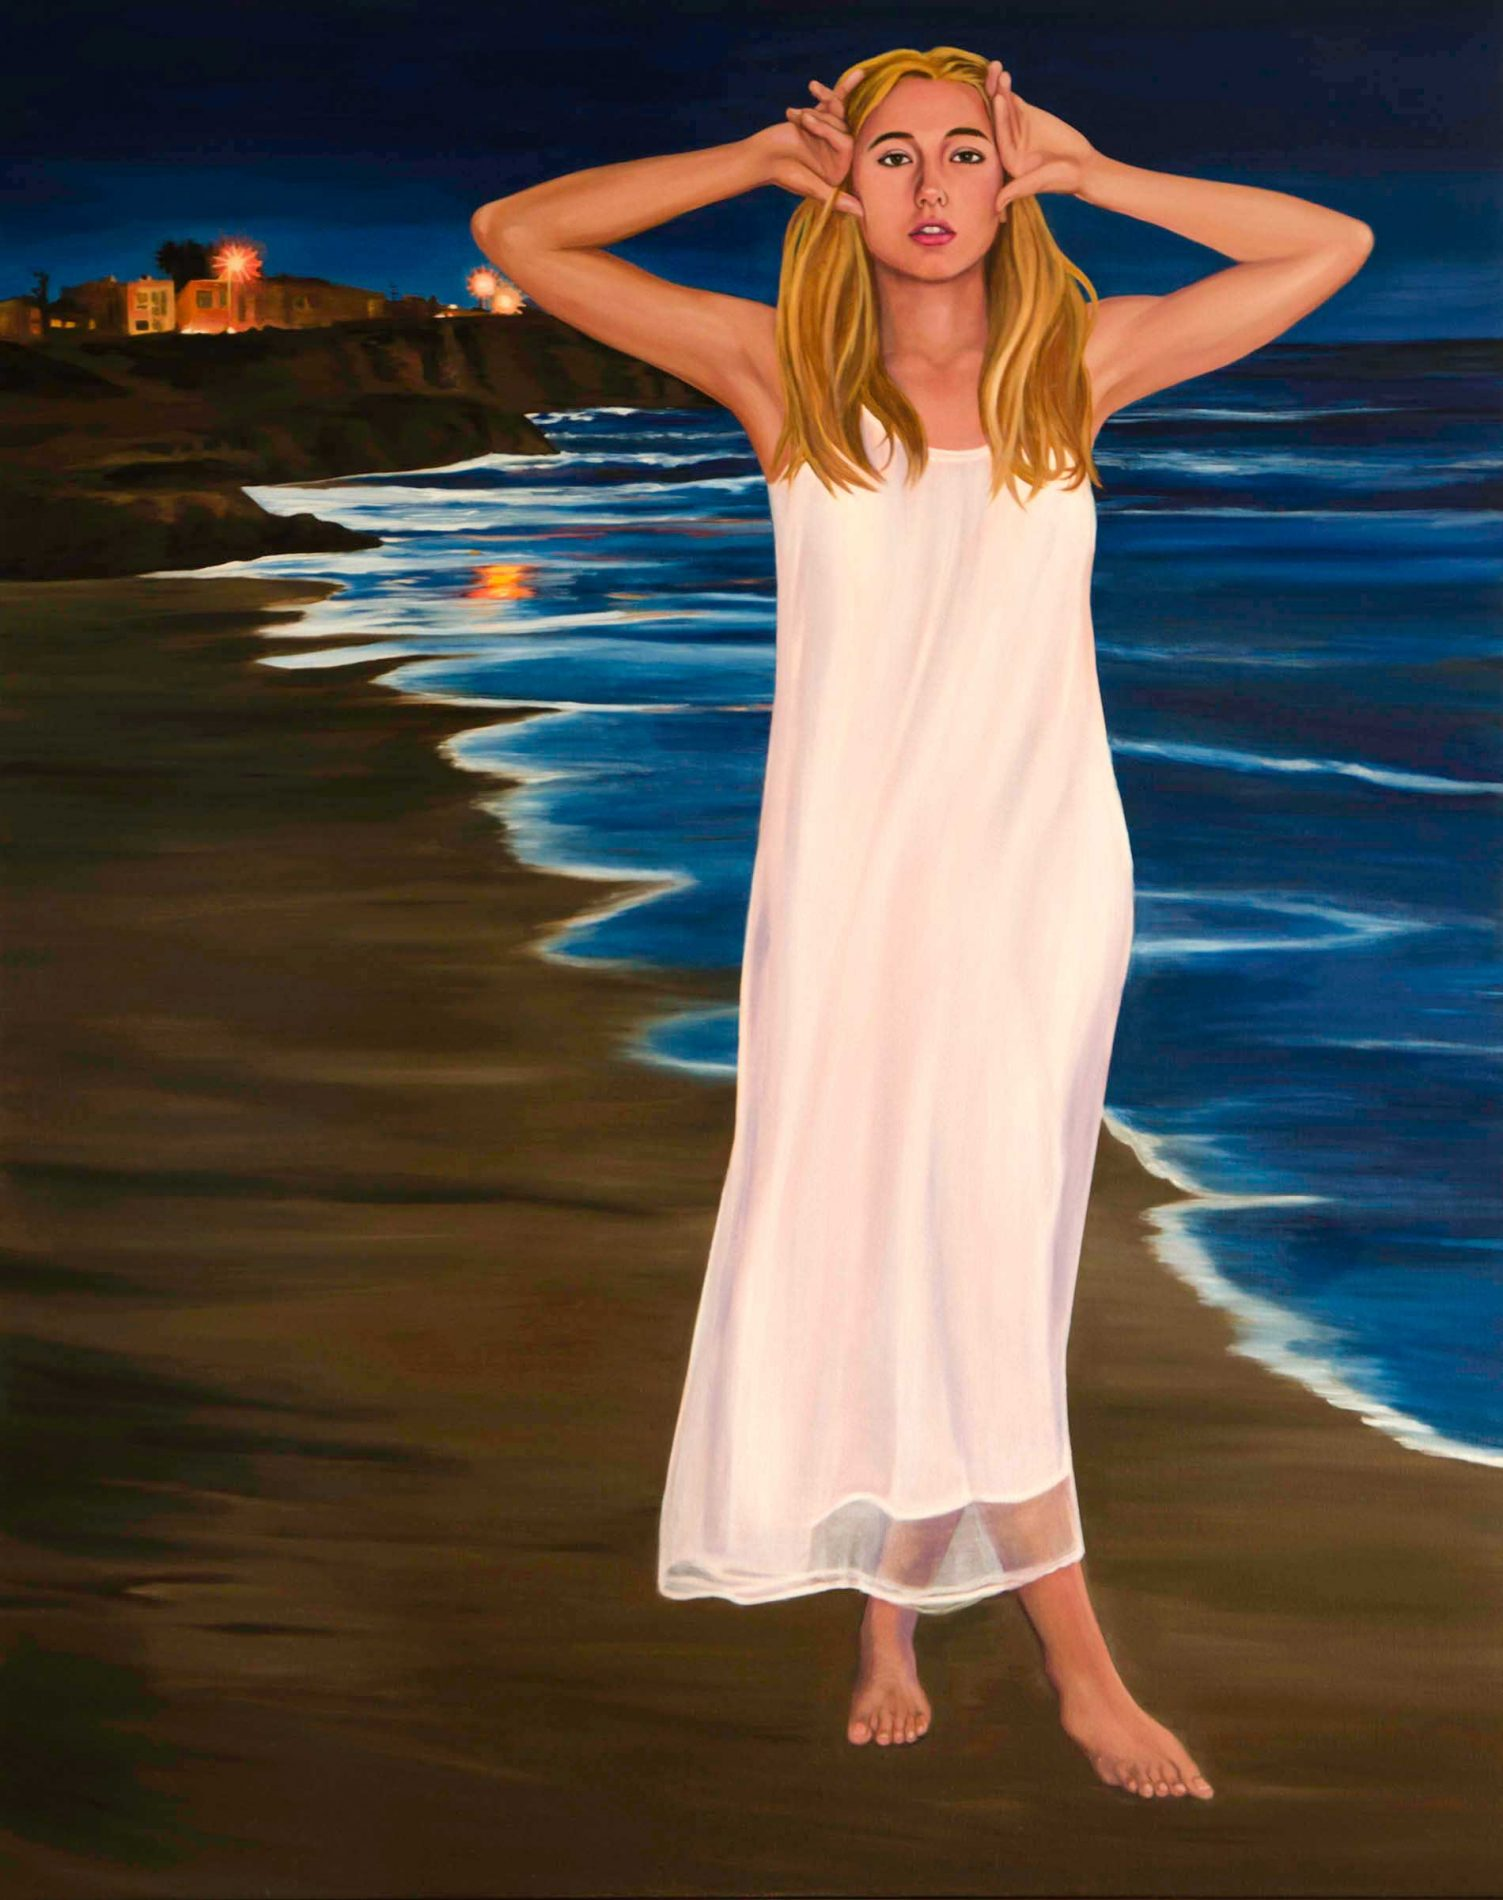 woman in nightgown on mitchell's cove santa cruz